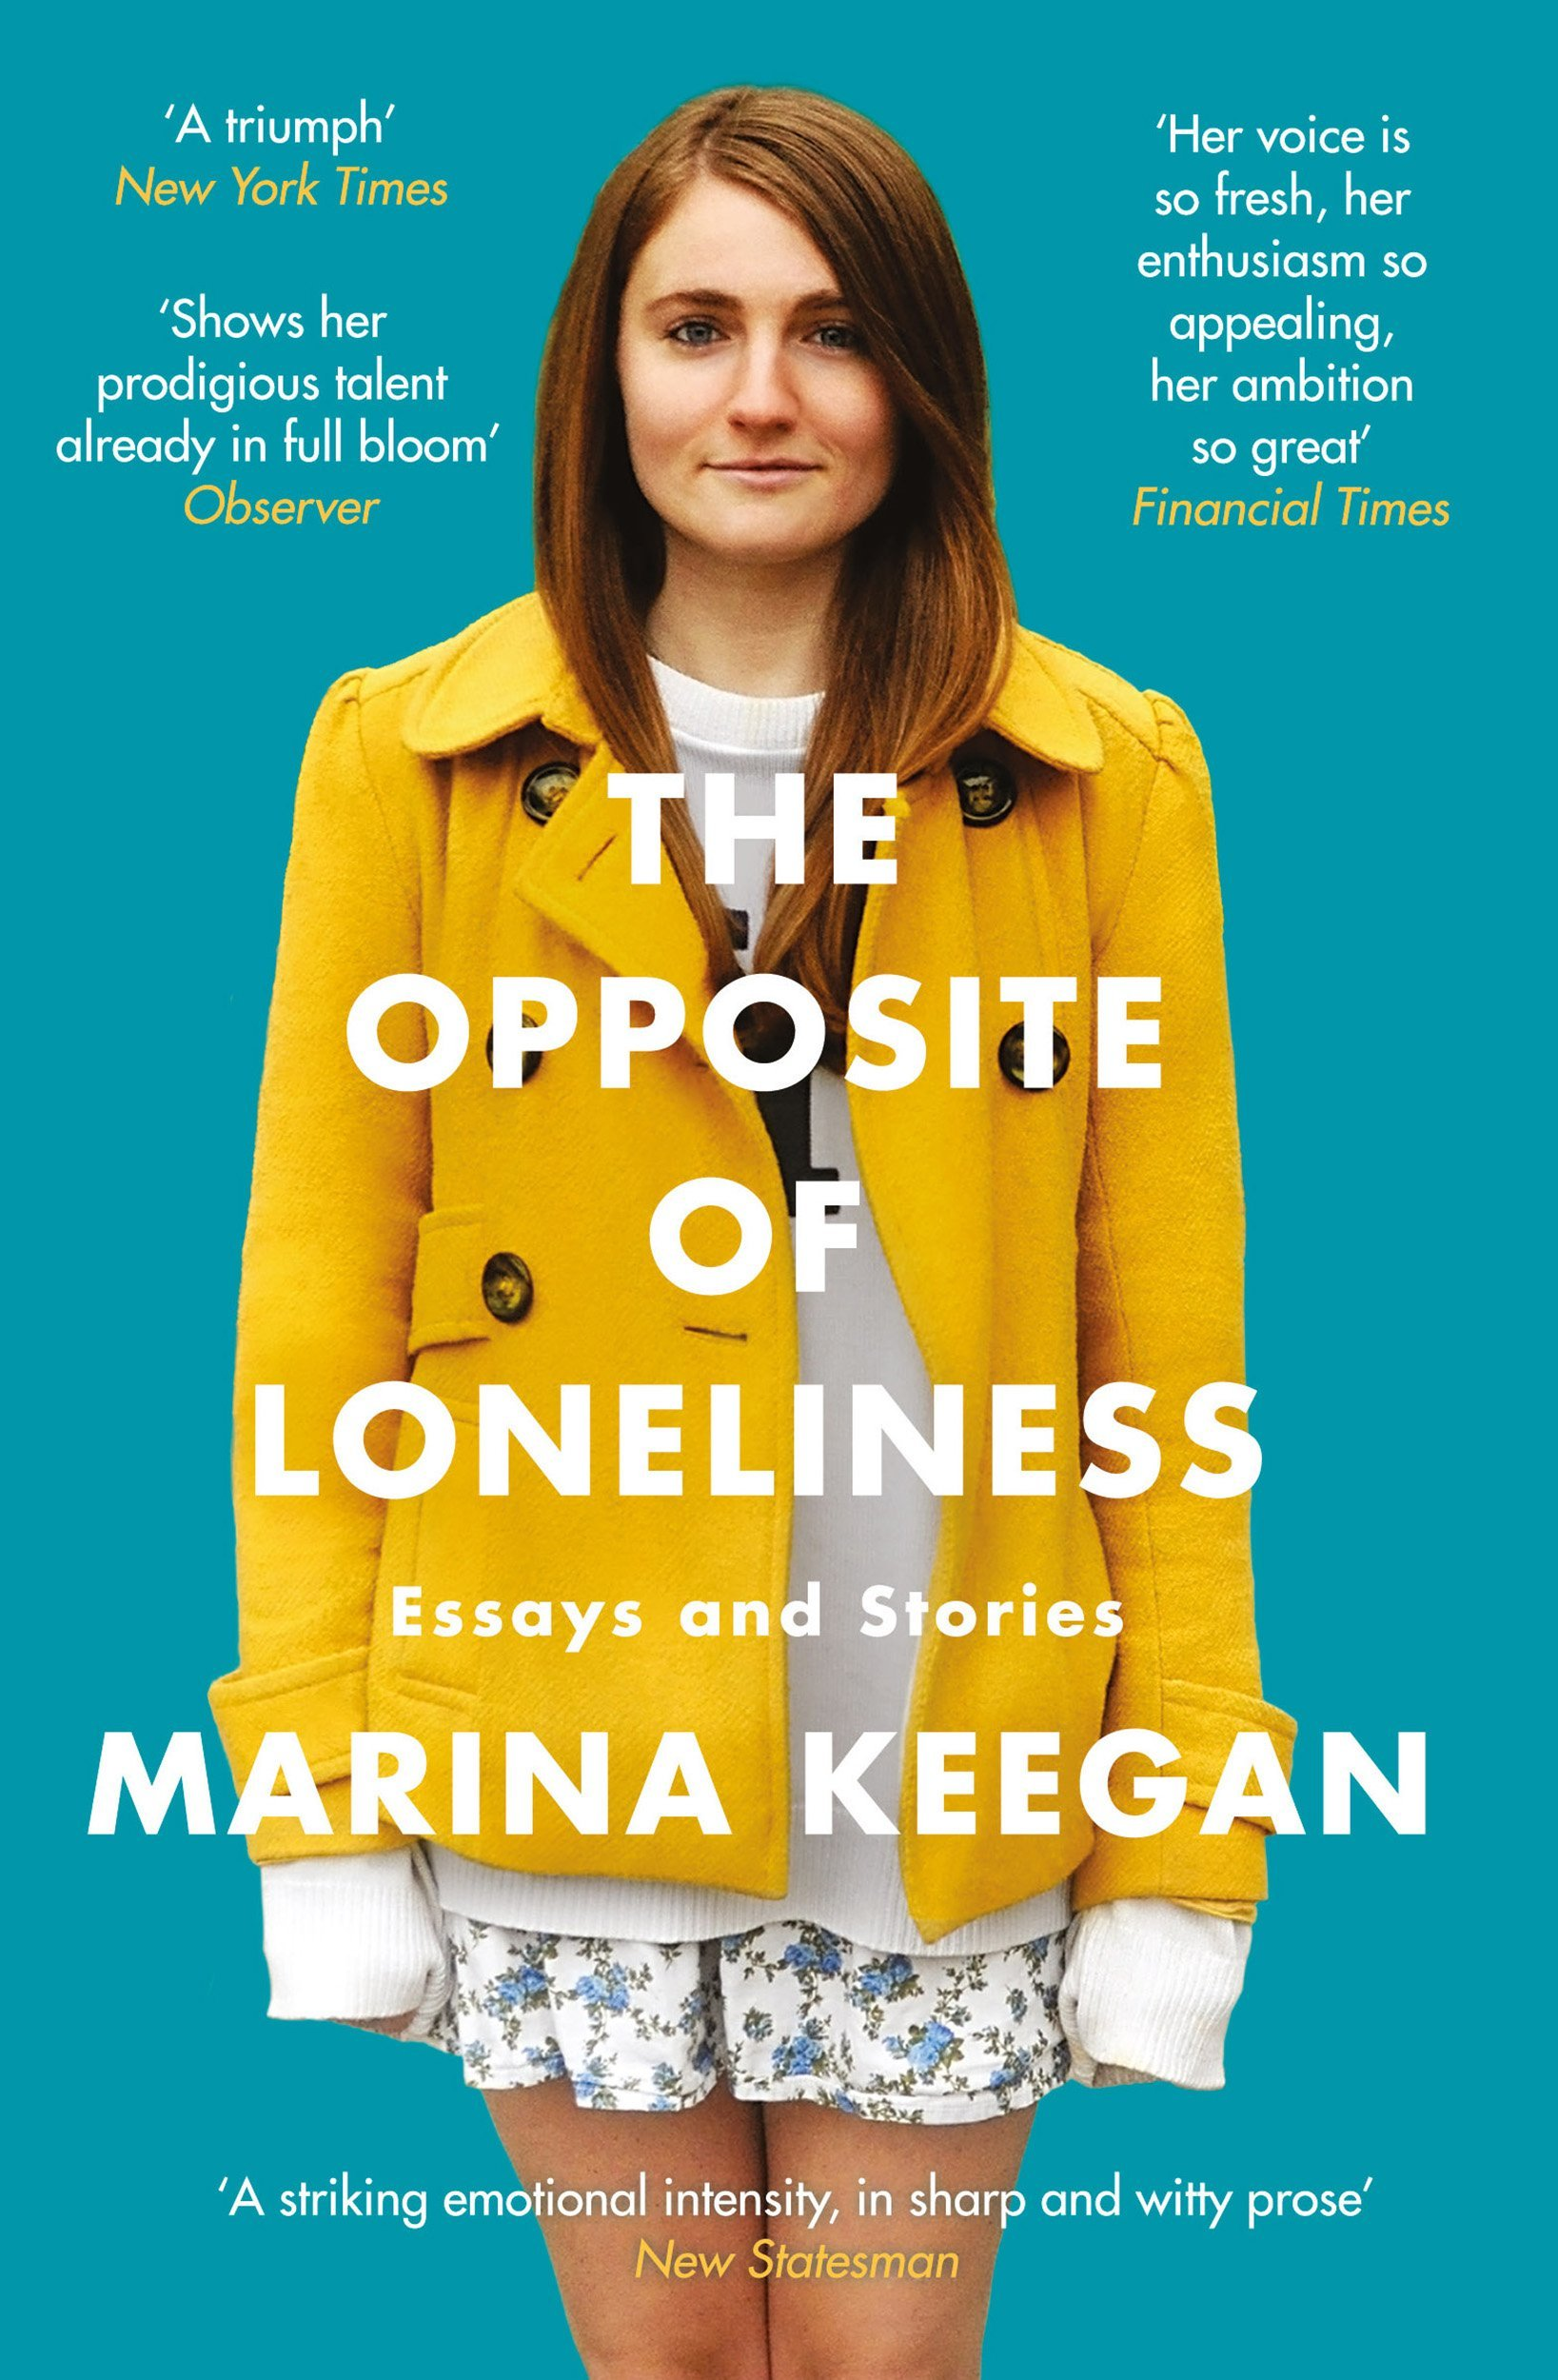 003 The Opposite Of Loneliness Essay 81mrxix7e1l Fascinating Book Essays And Stories Full